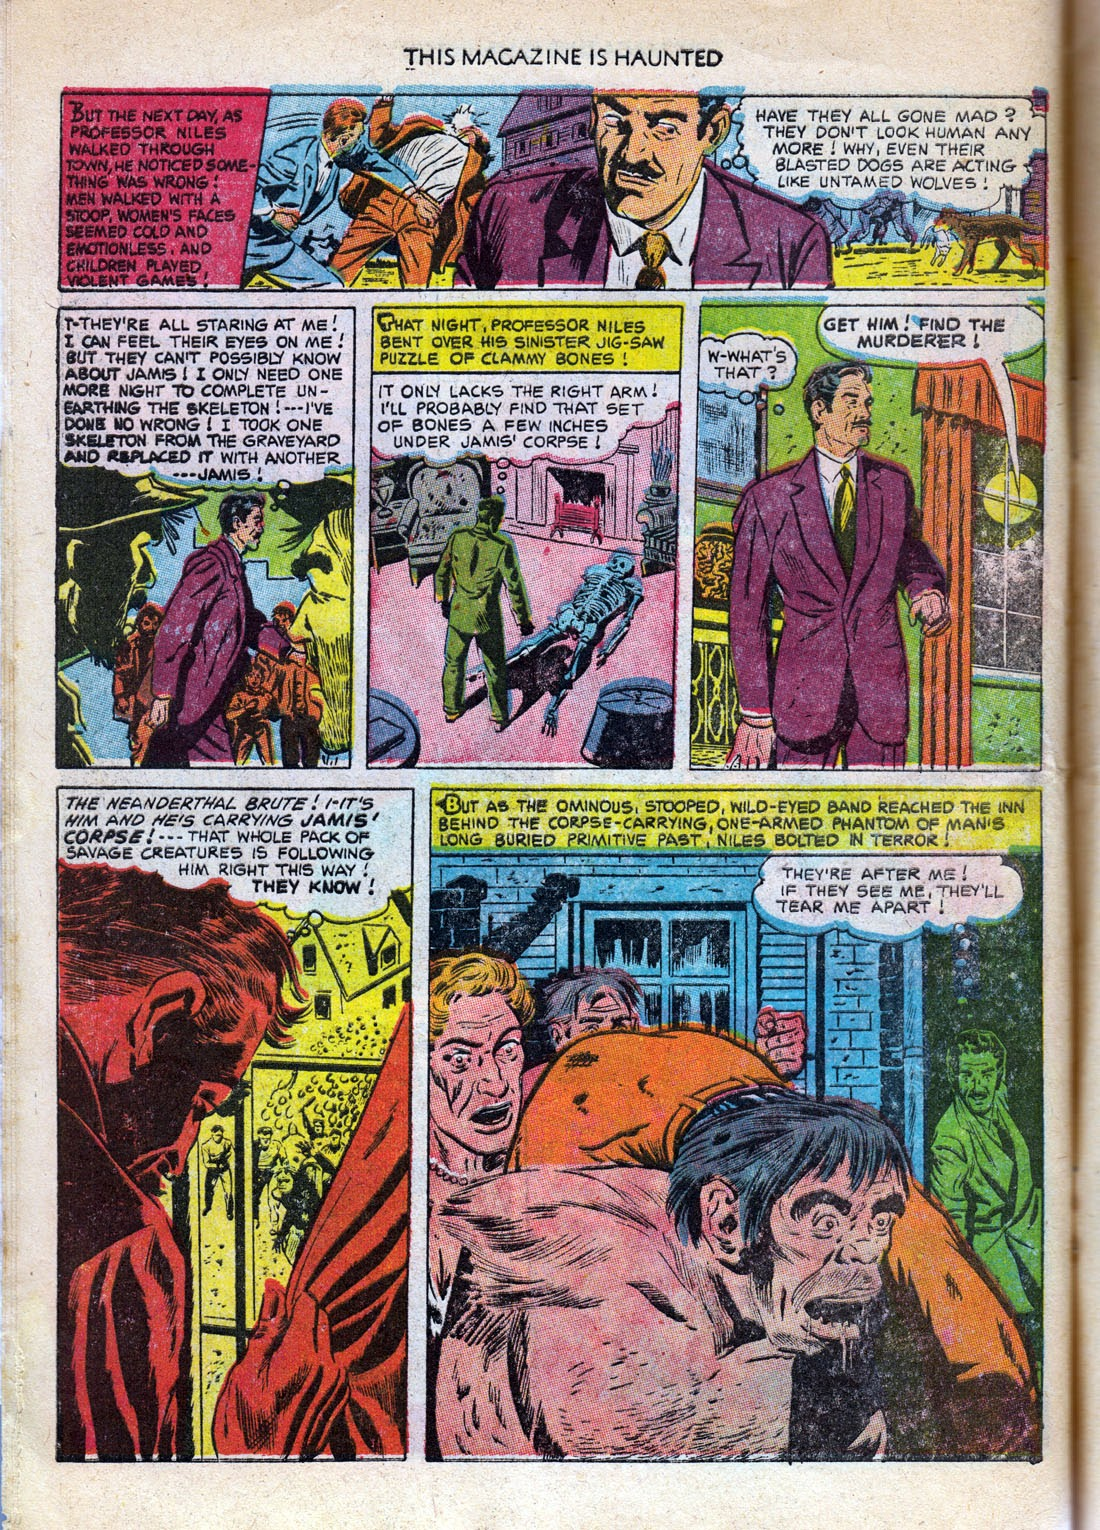 Read online This Magazine Is Haunted comic -  Issue #10 - 10